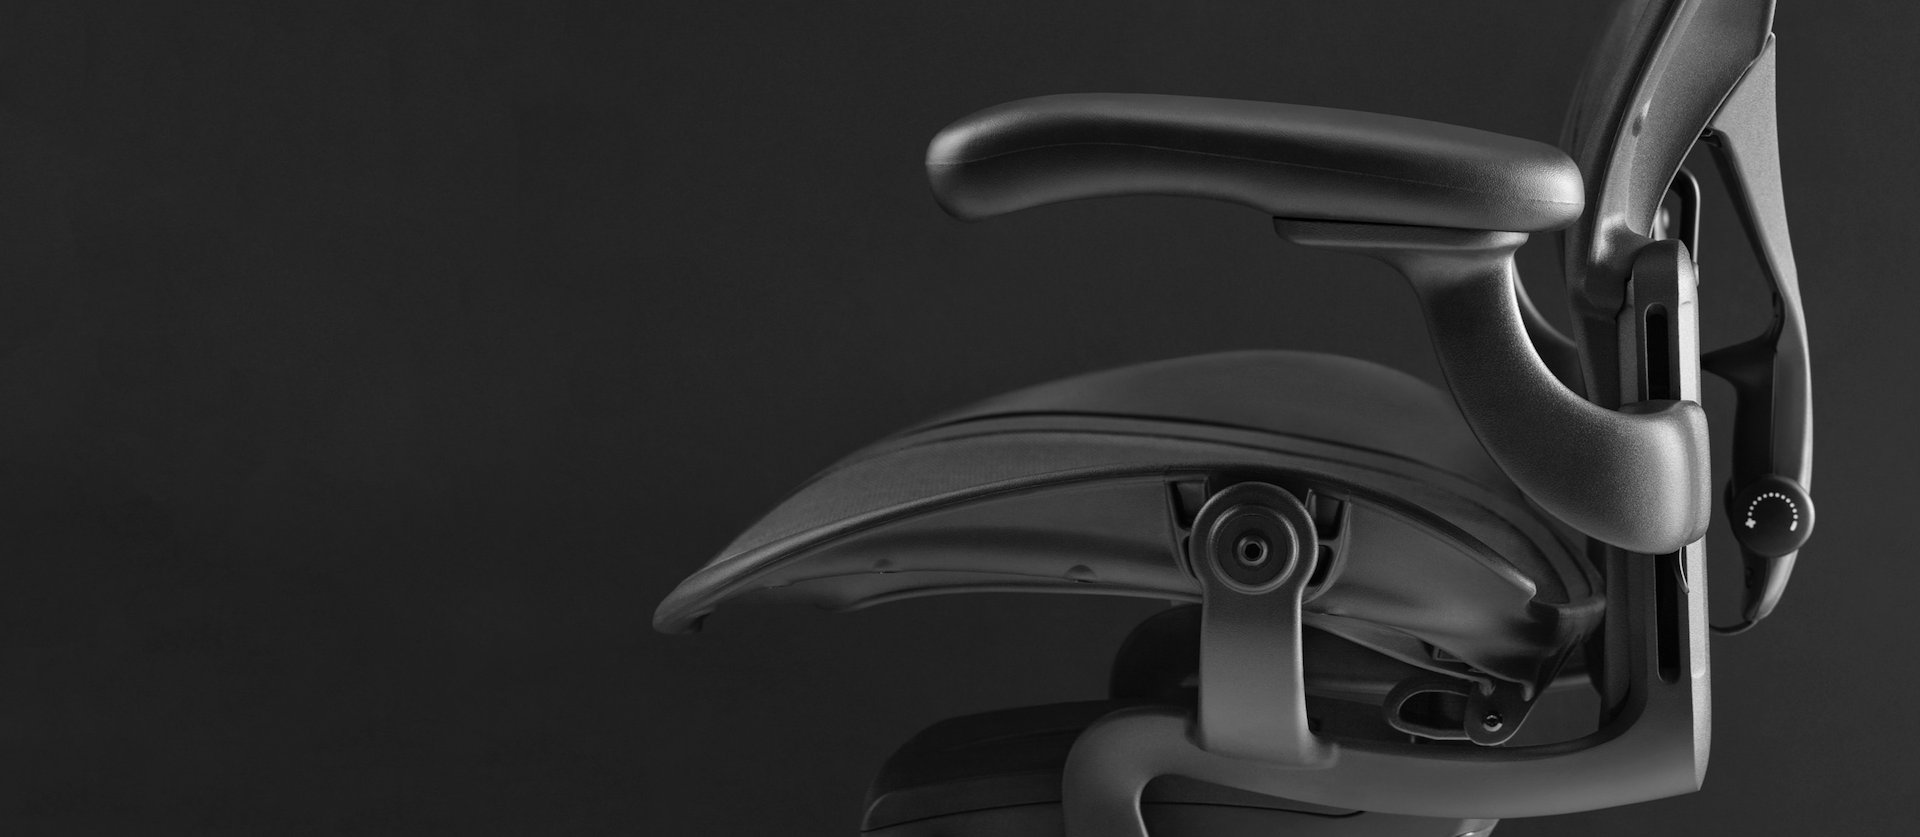 Problem-Solver-Aeron-Chair-Repair-Blog-1920x800